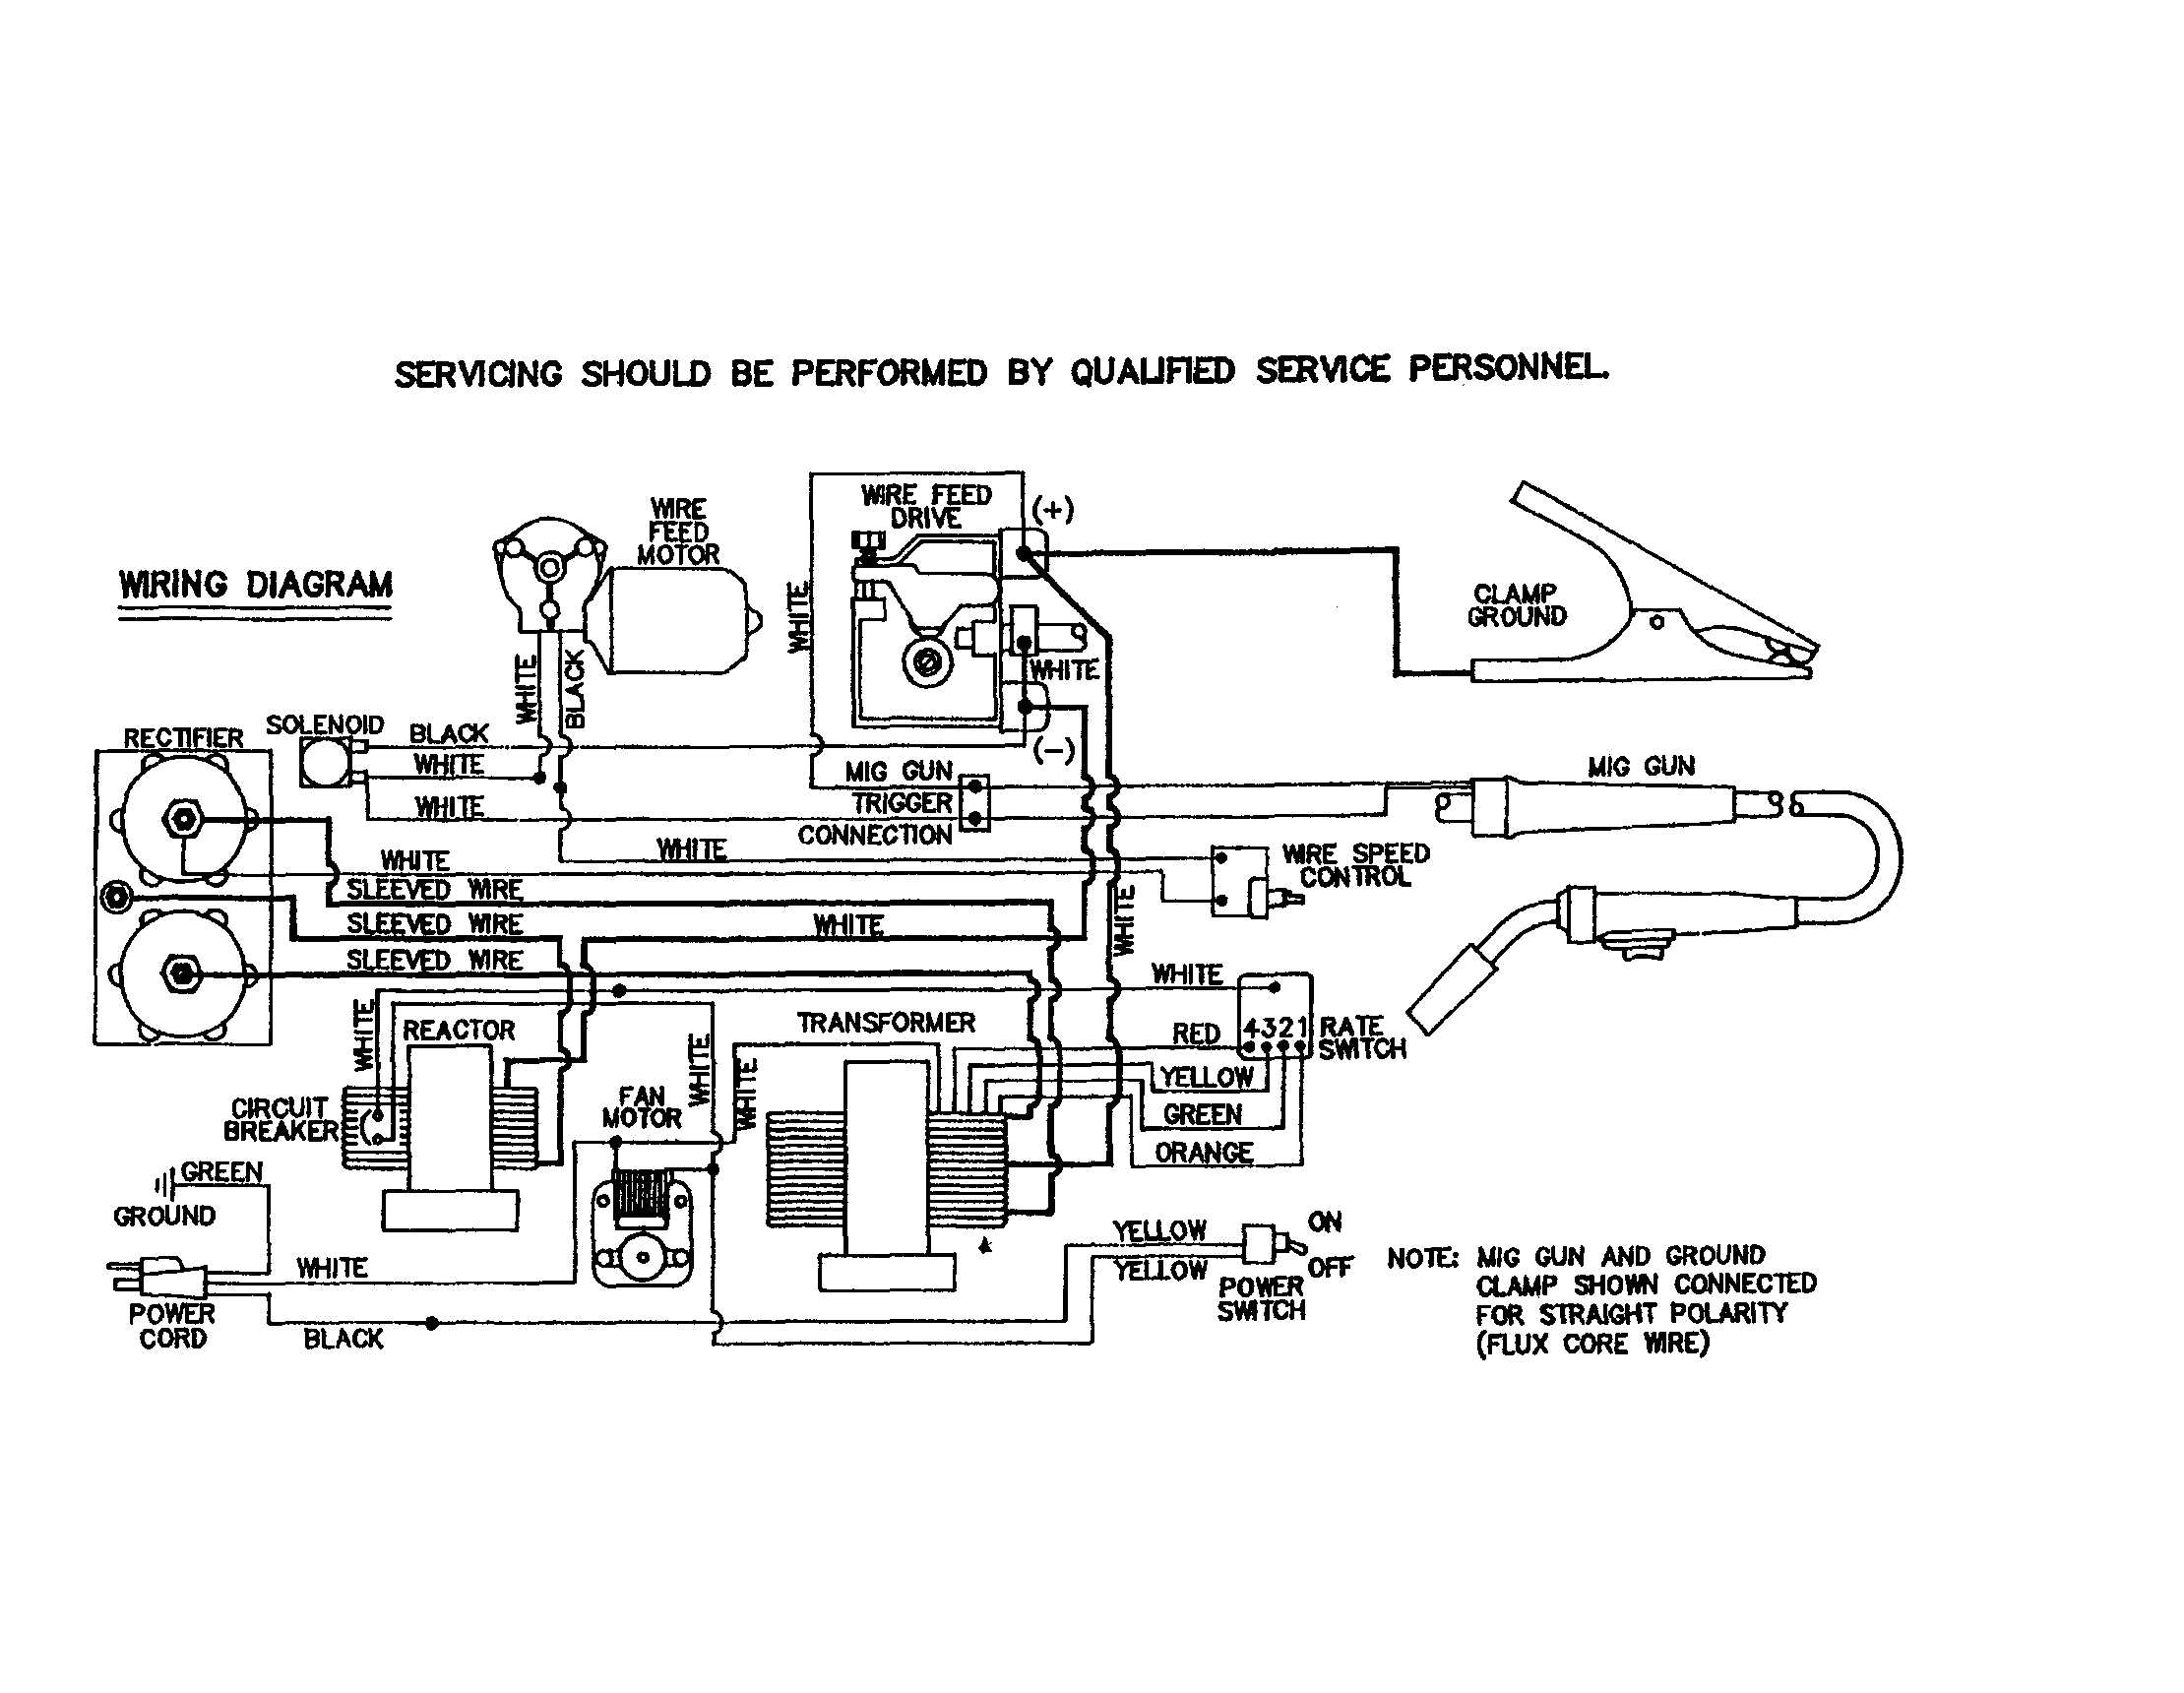 hight resolution of new modra generator wiring diagram diagram diagramsample diagramtemplate spot welder garage workshop